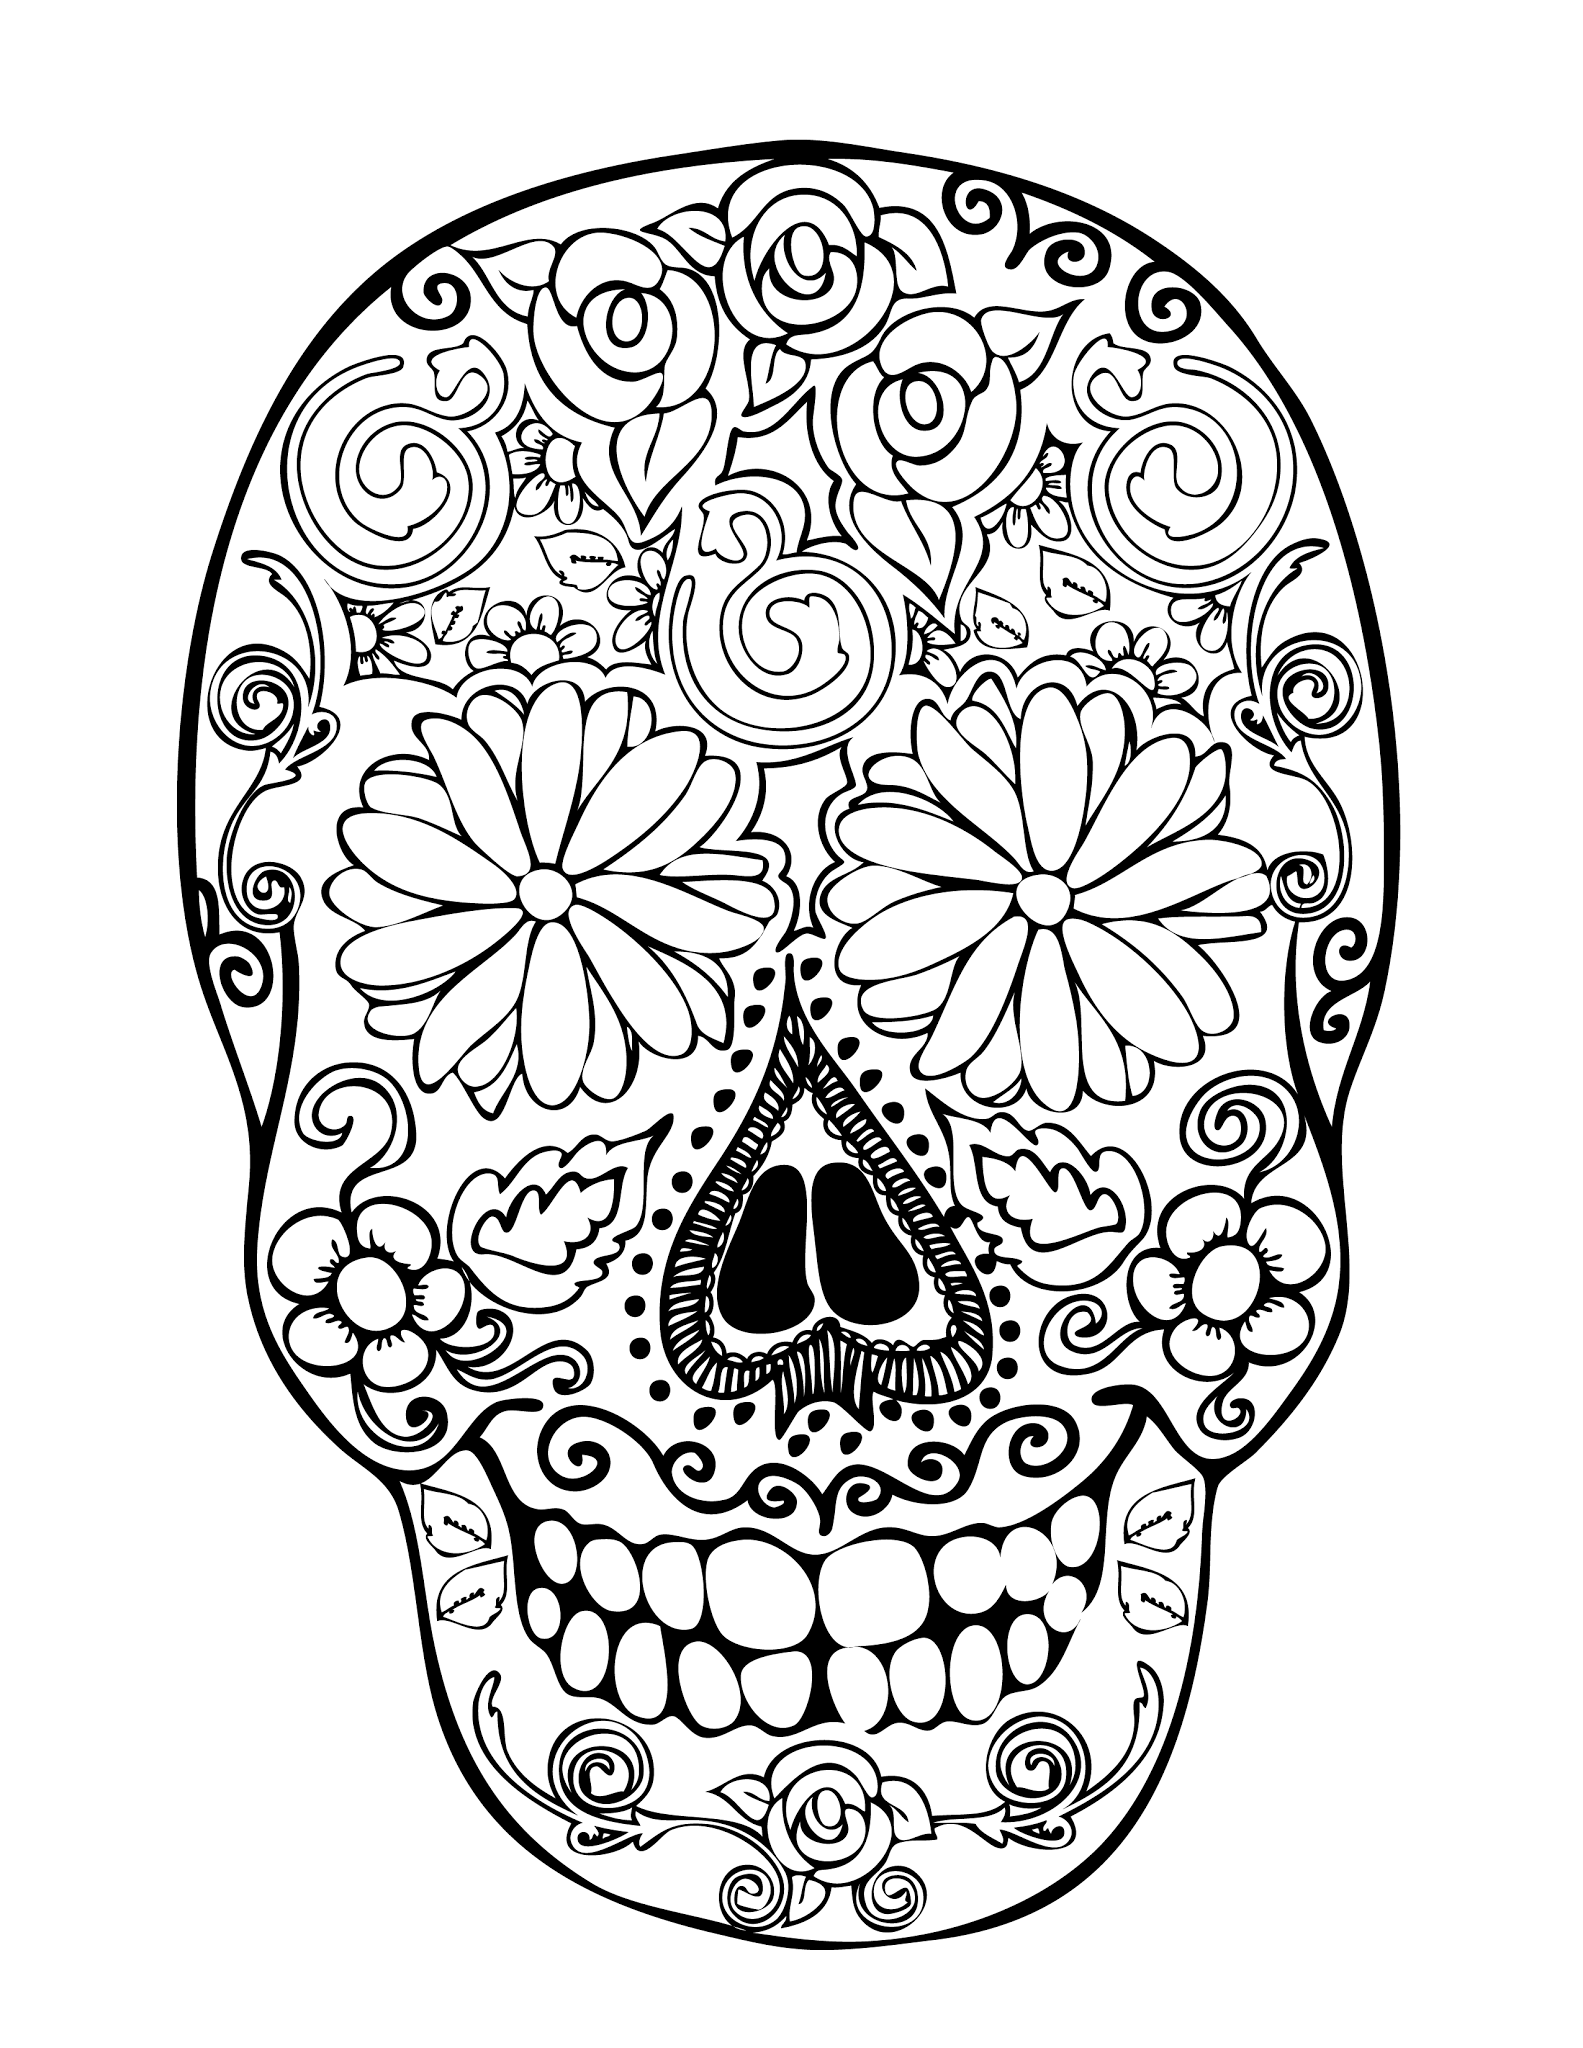 sugar skulls coloring pages - 28 skull coloring pages for kids print color craft